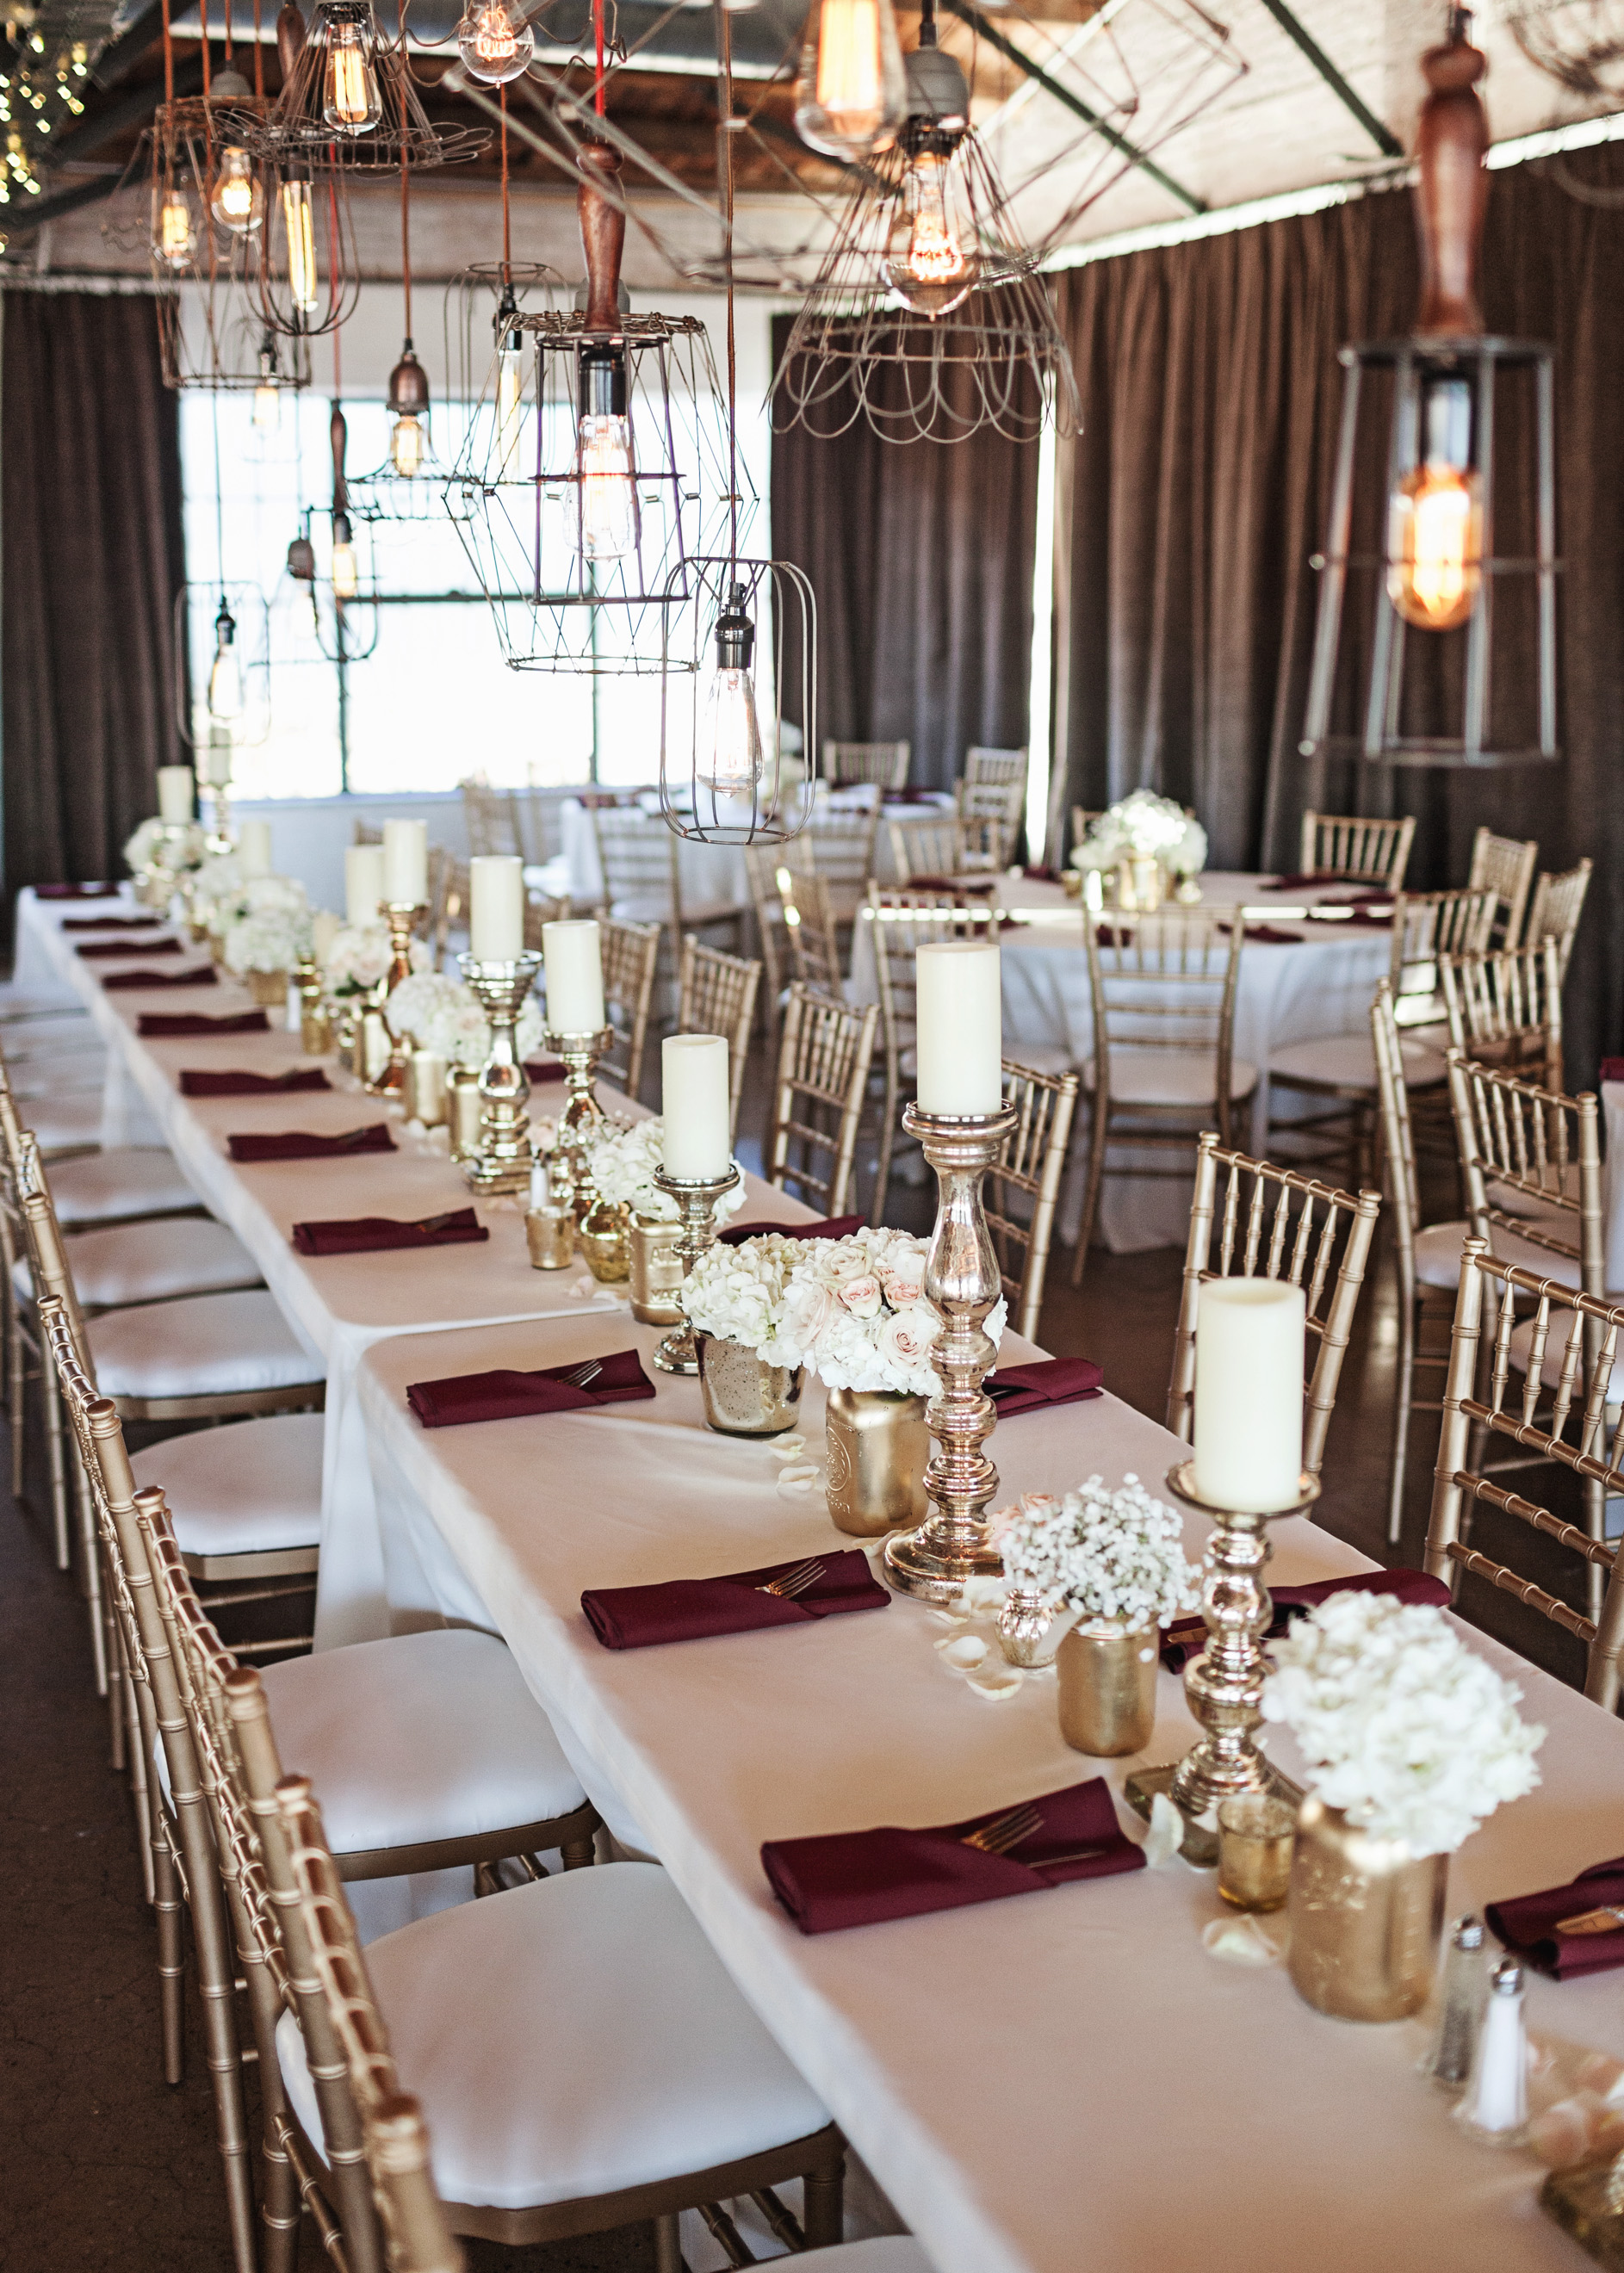 Rustic Chic Gold and White Wedding - Southern Affairs Weddings and Events